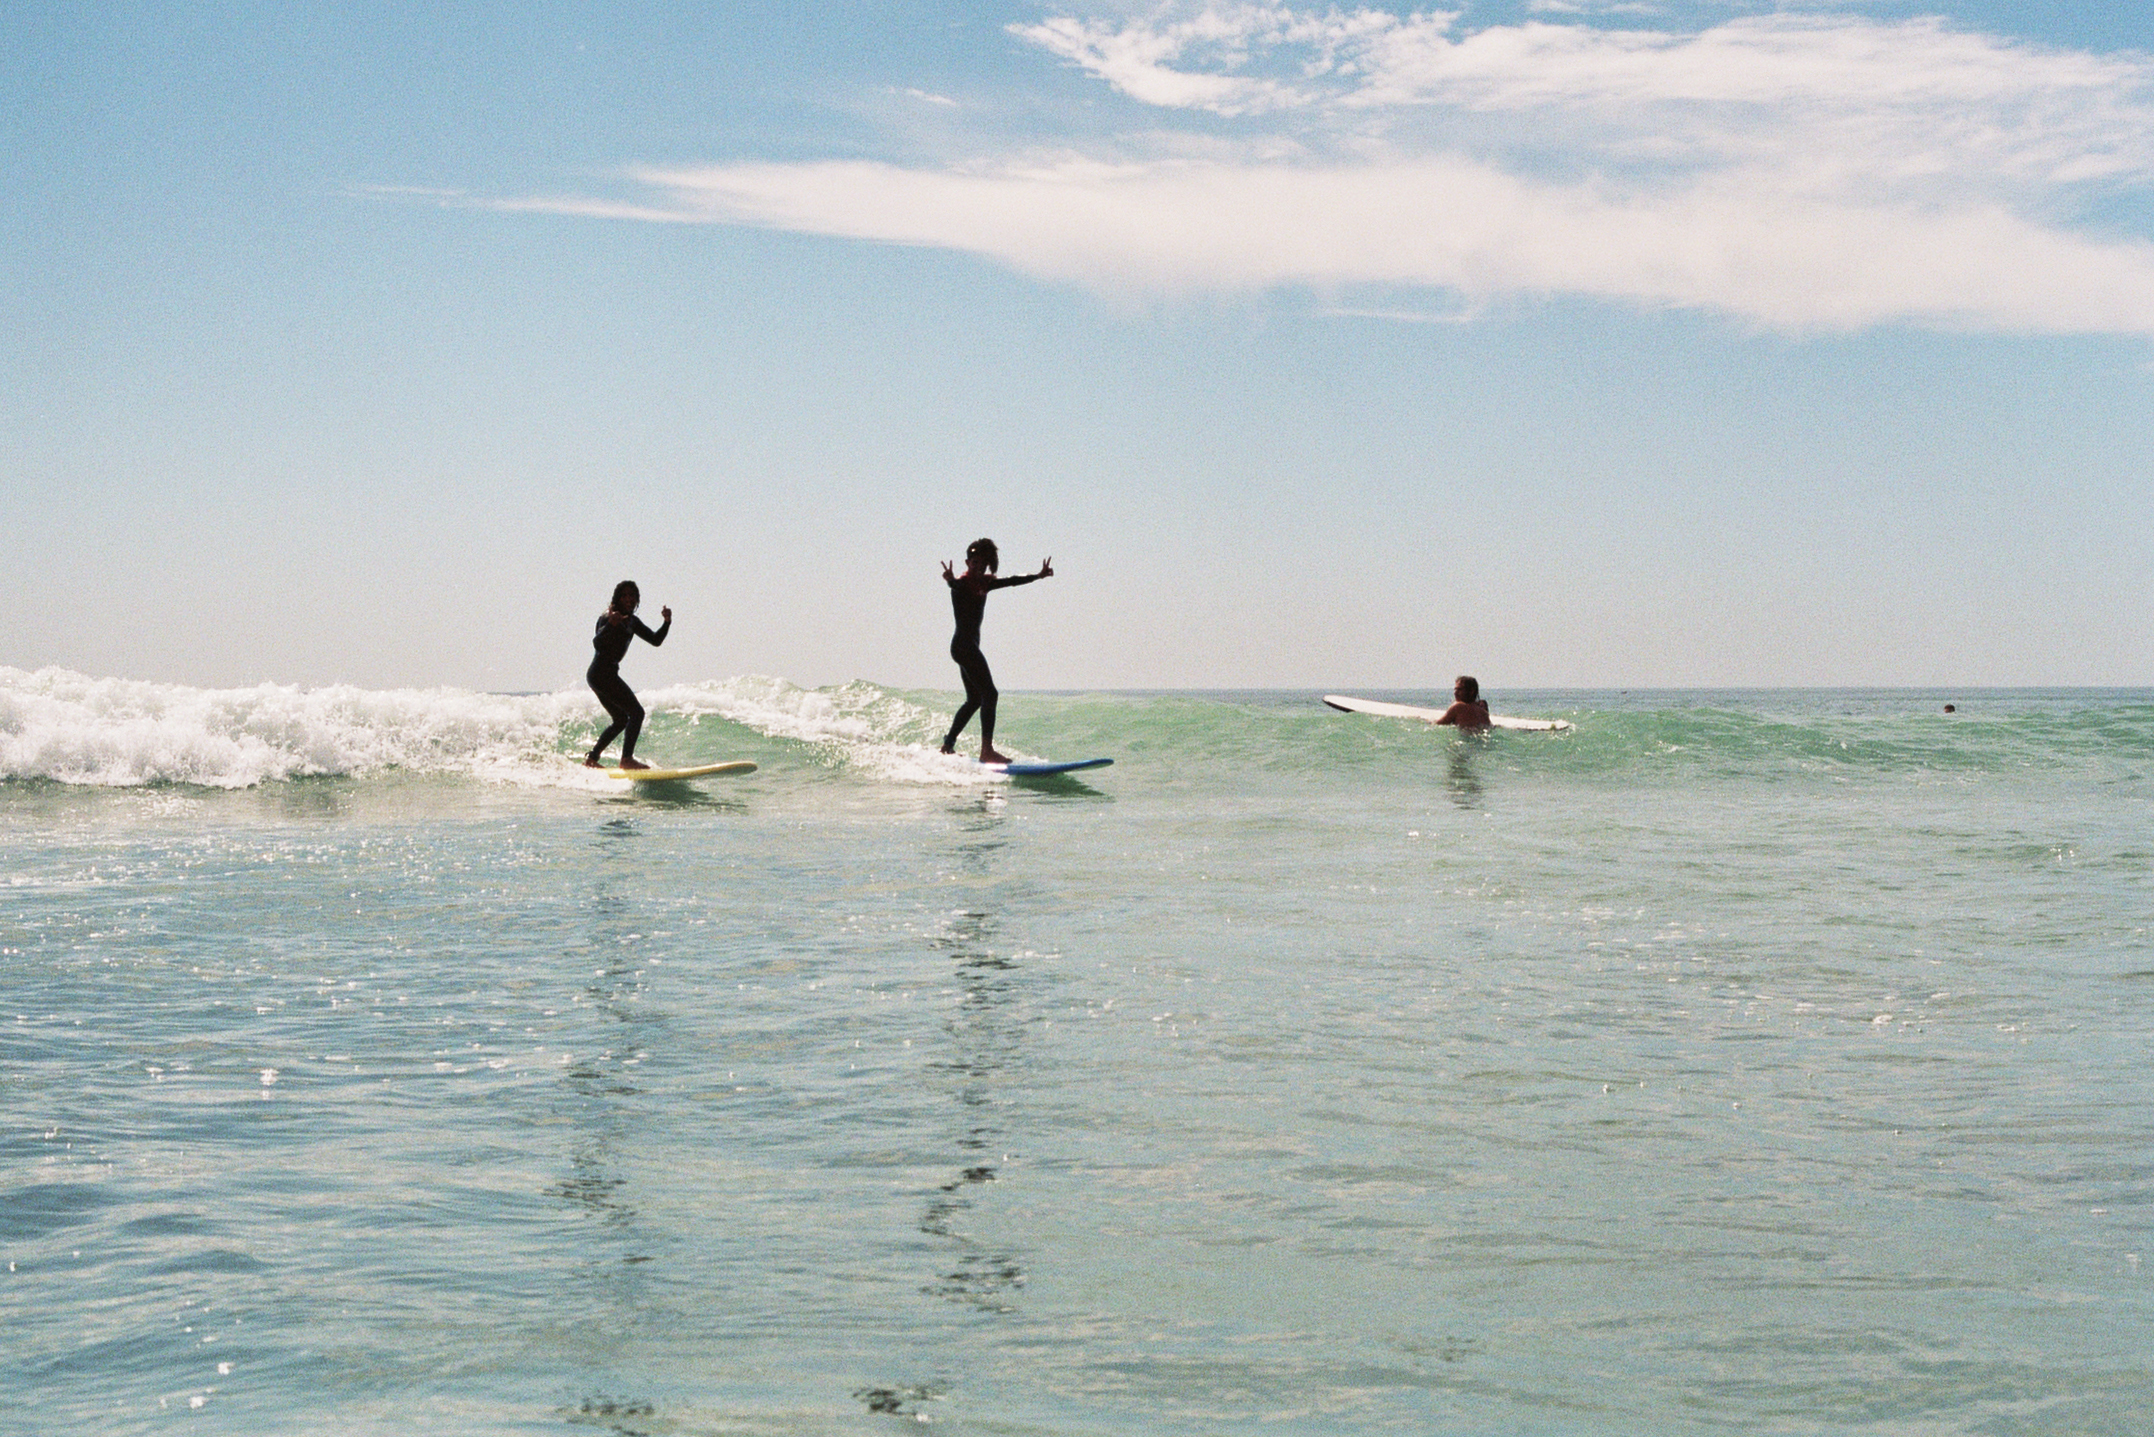 Take your surfing to the next level…